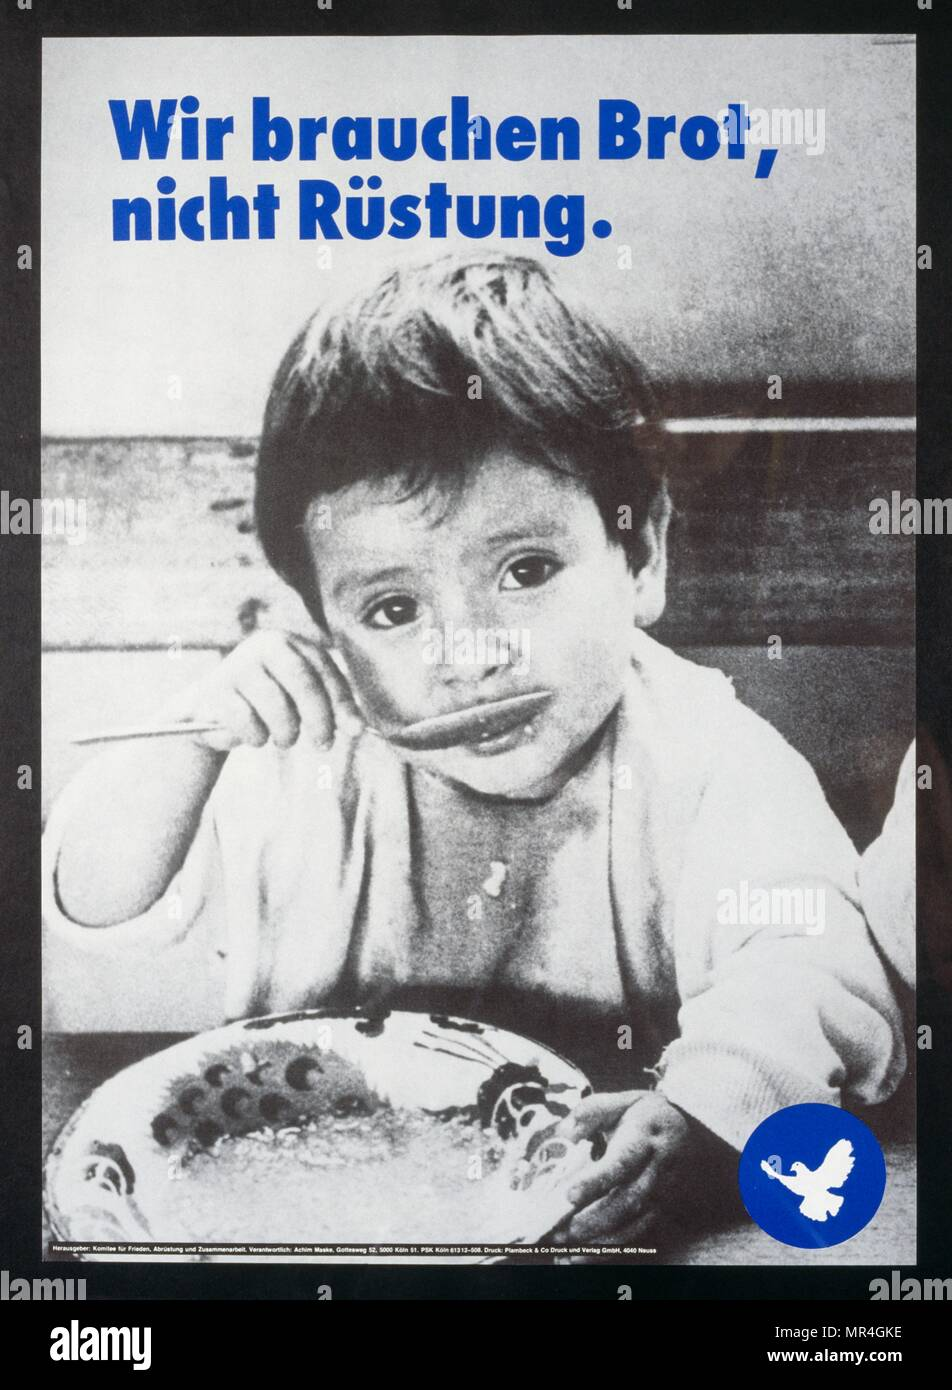 German poster campaigning for peace 1980 - Stock Image